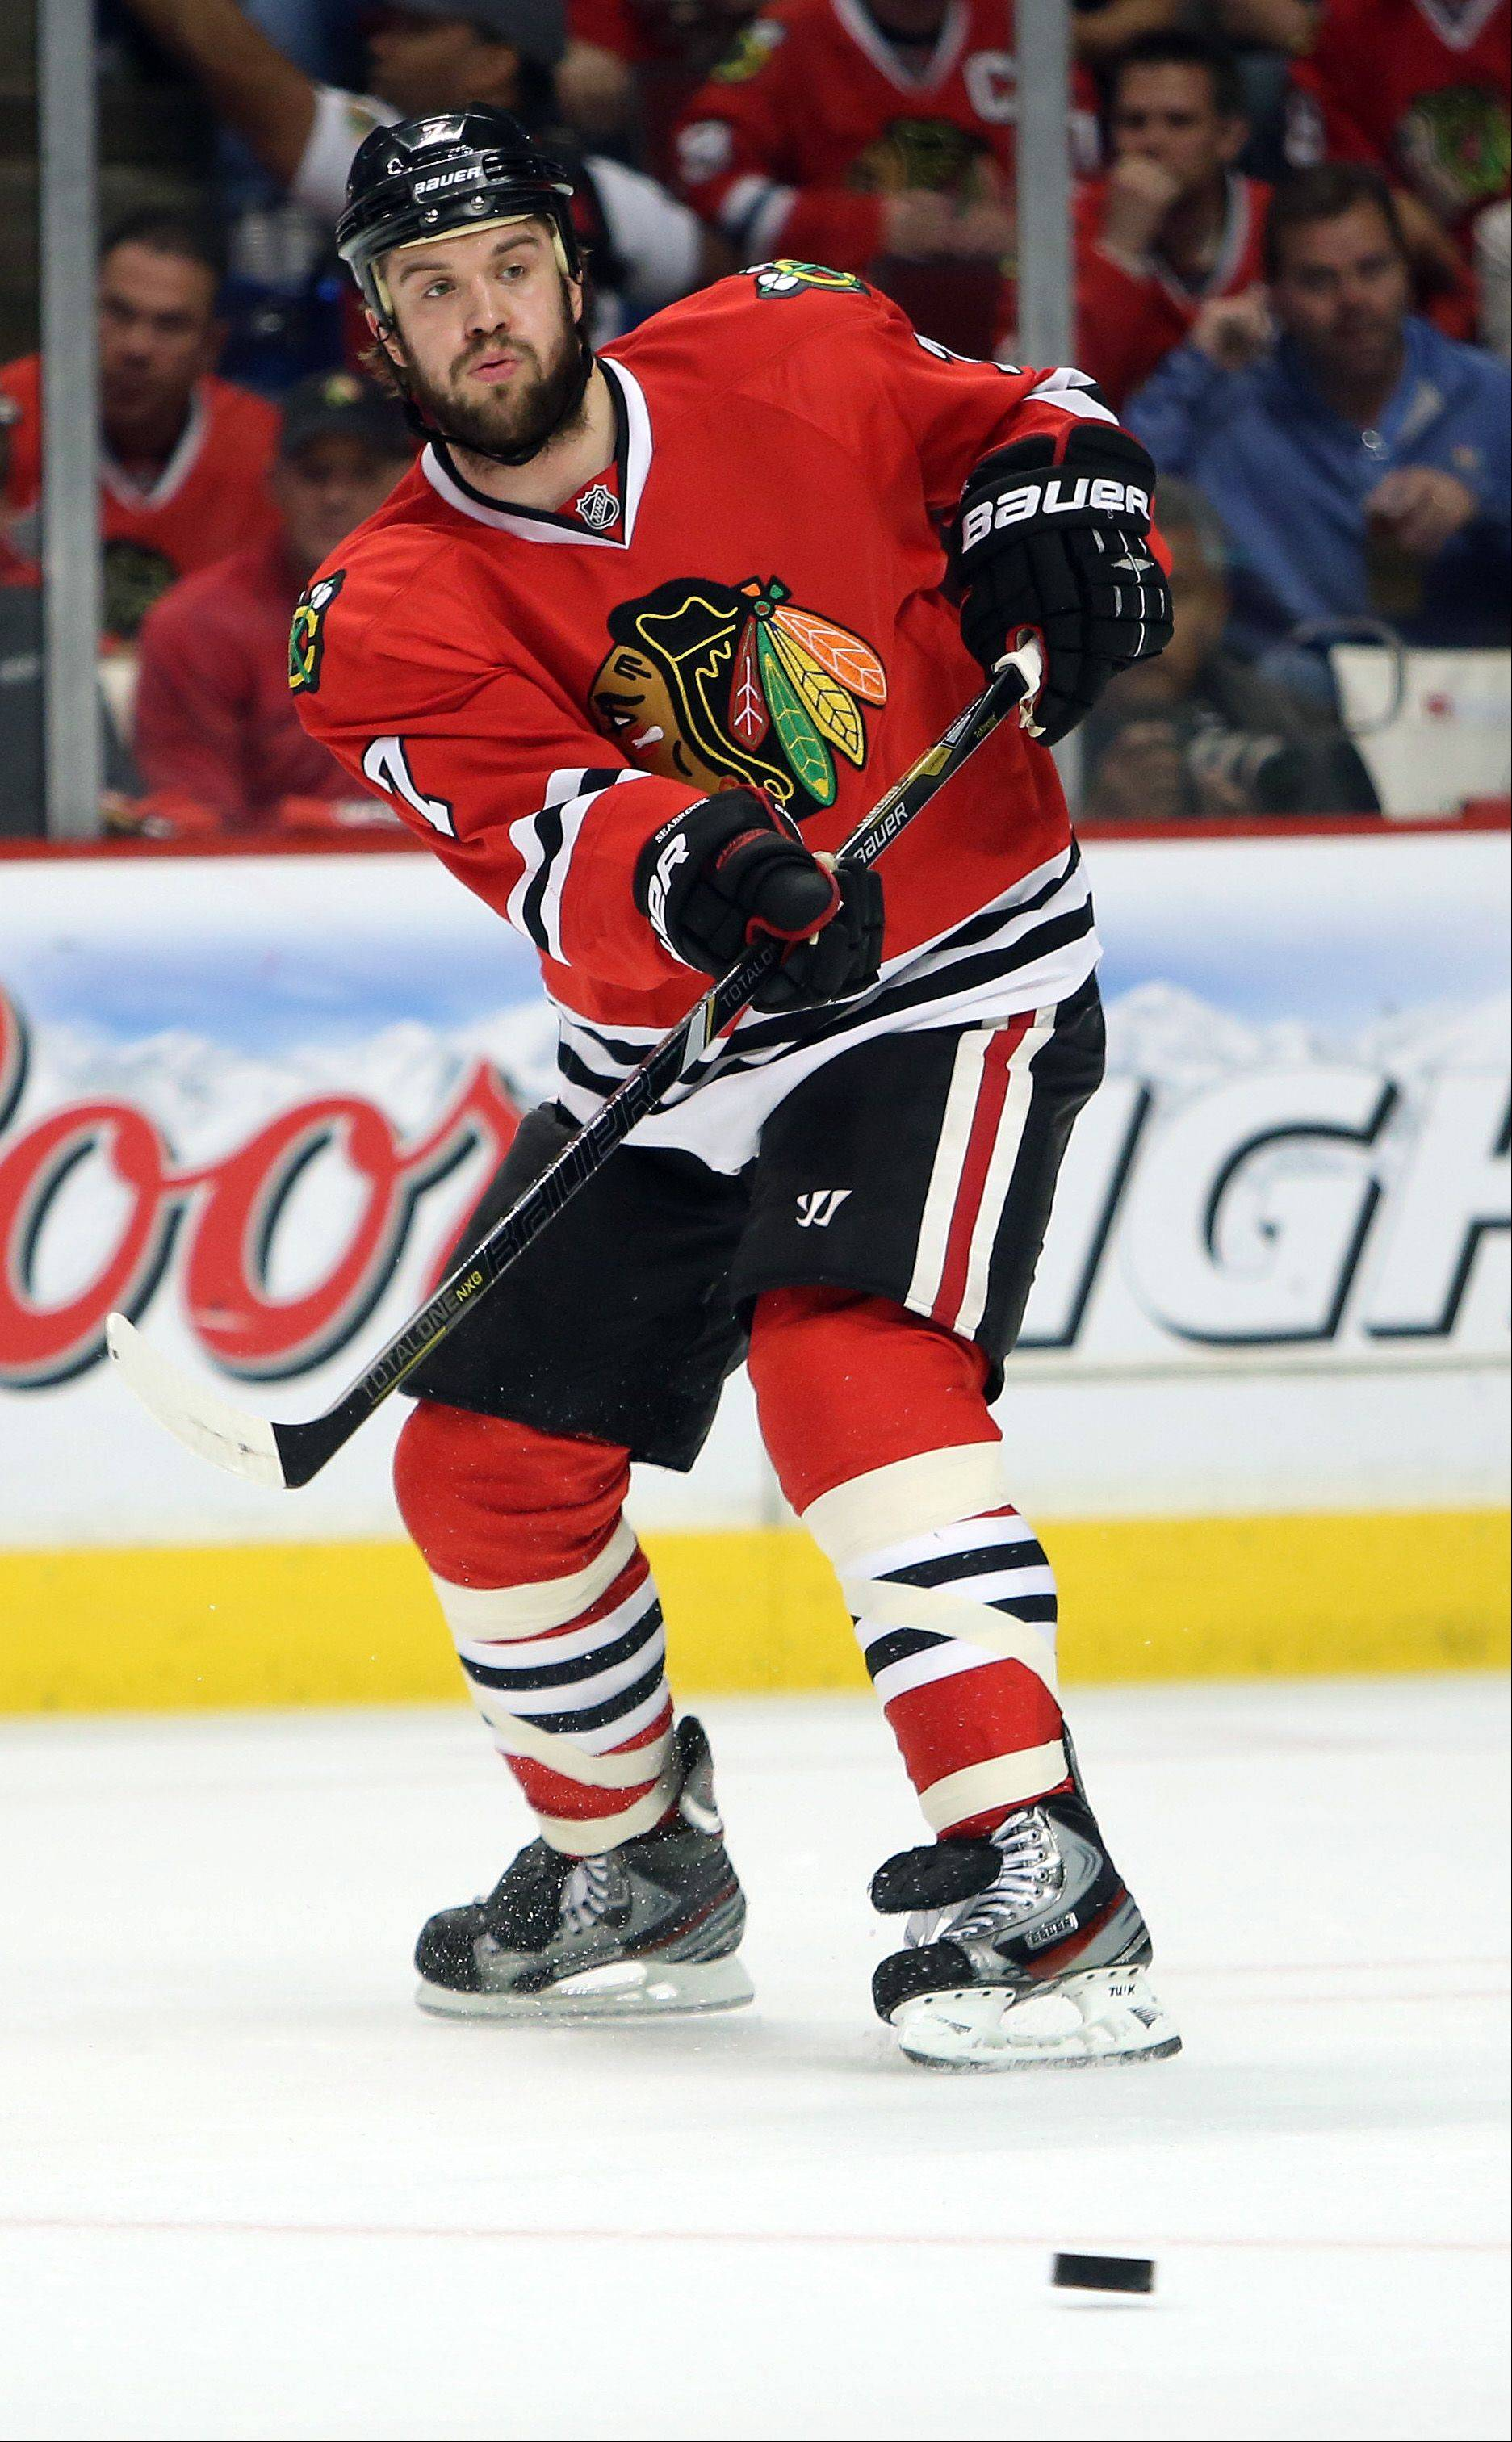 Steve Lundy/slundy@dailyherald.comVeteran defenseman Brent Seabrook had his ice time cut in half by the time Game 4 rolled around, but he stepped up big to deliver the game-winning goal for the Blackhawks Wednesday night.